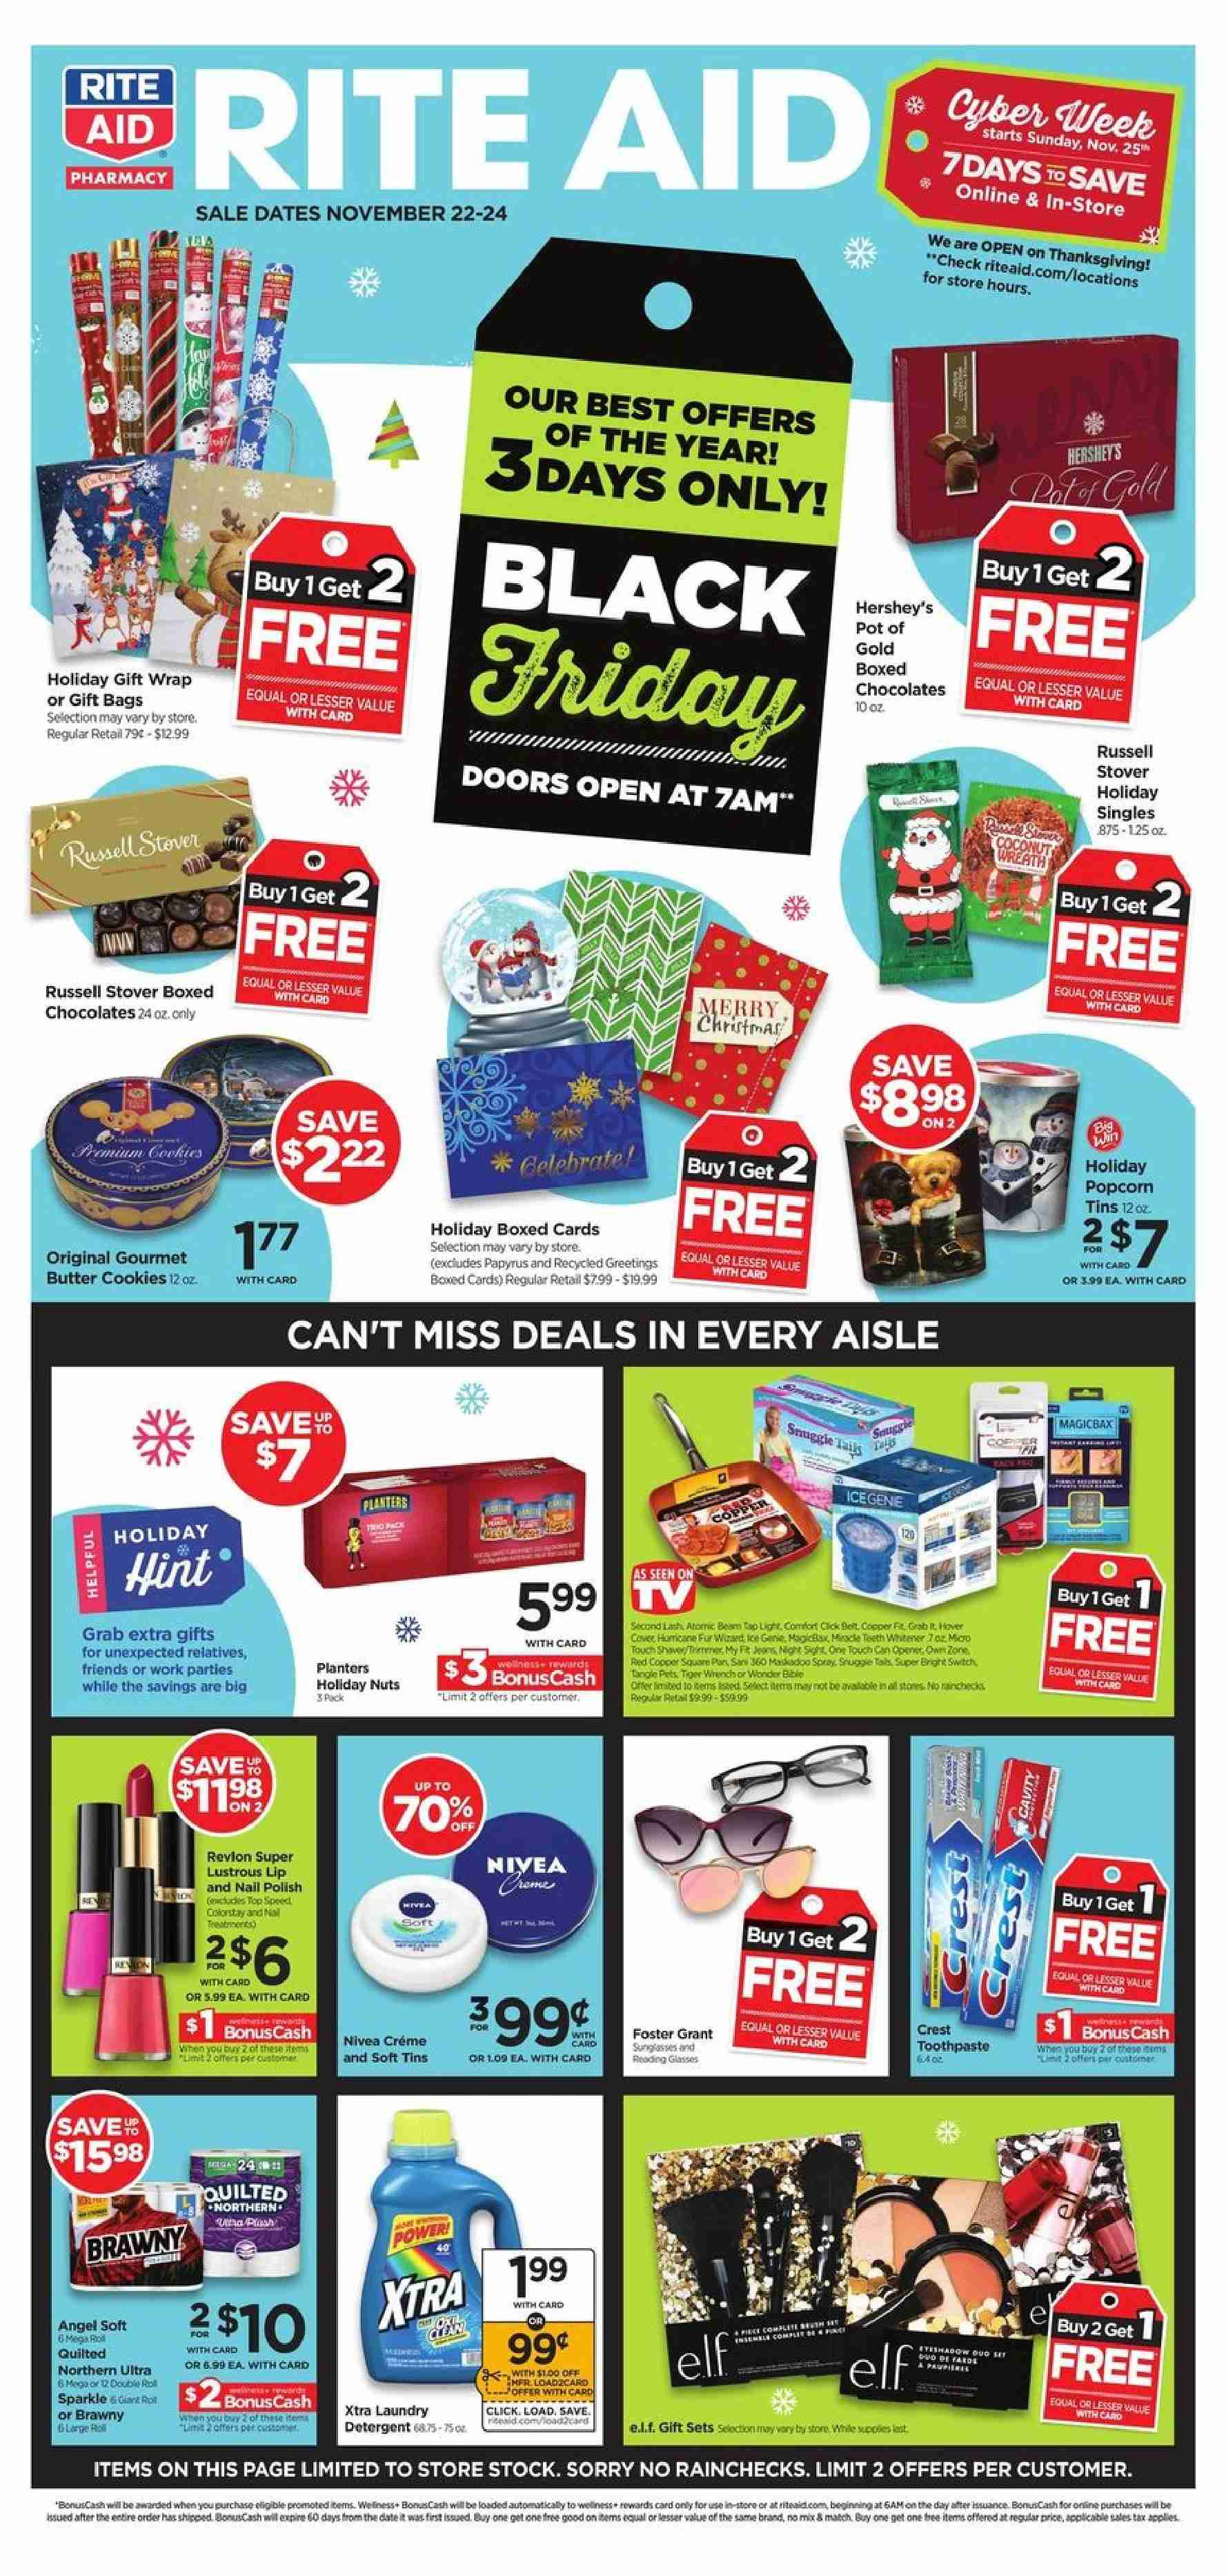 RITE AID Flyer - 11.22.2018 - 11.24.2018 - Sales products - wrap, cookies, butter cookies, nuts, Nivea, detergent, Revlon, pan. Page 1.